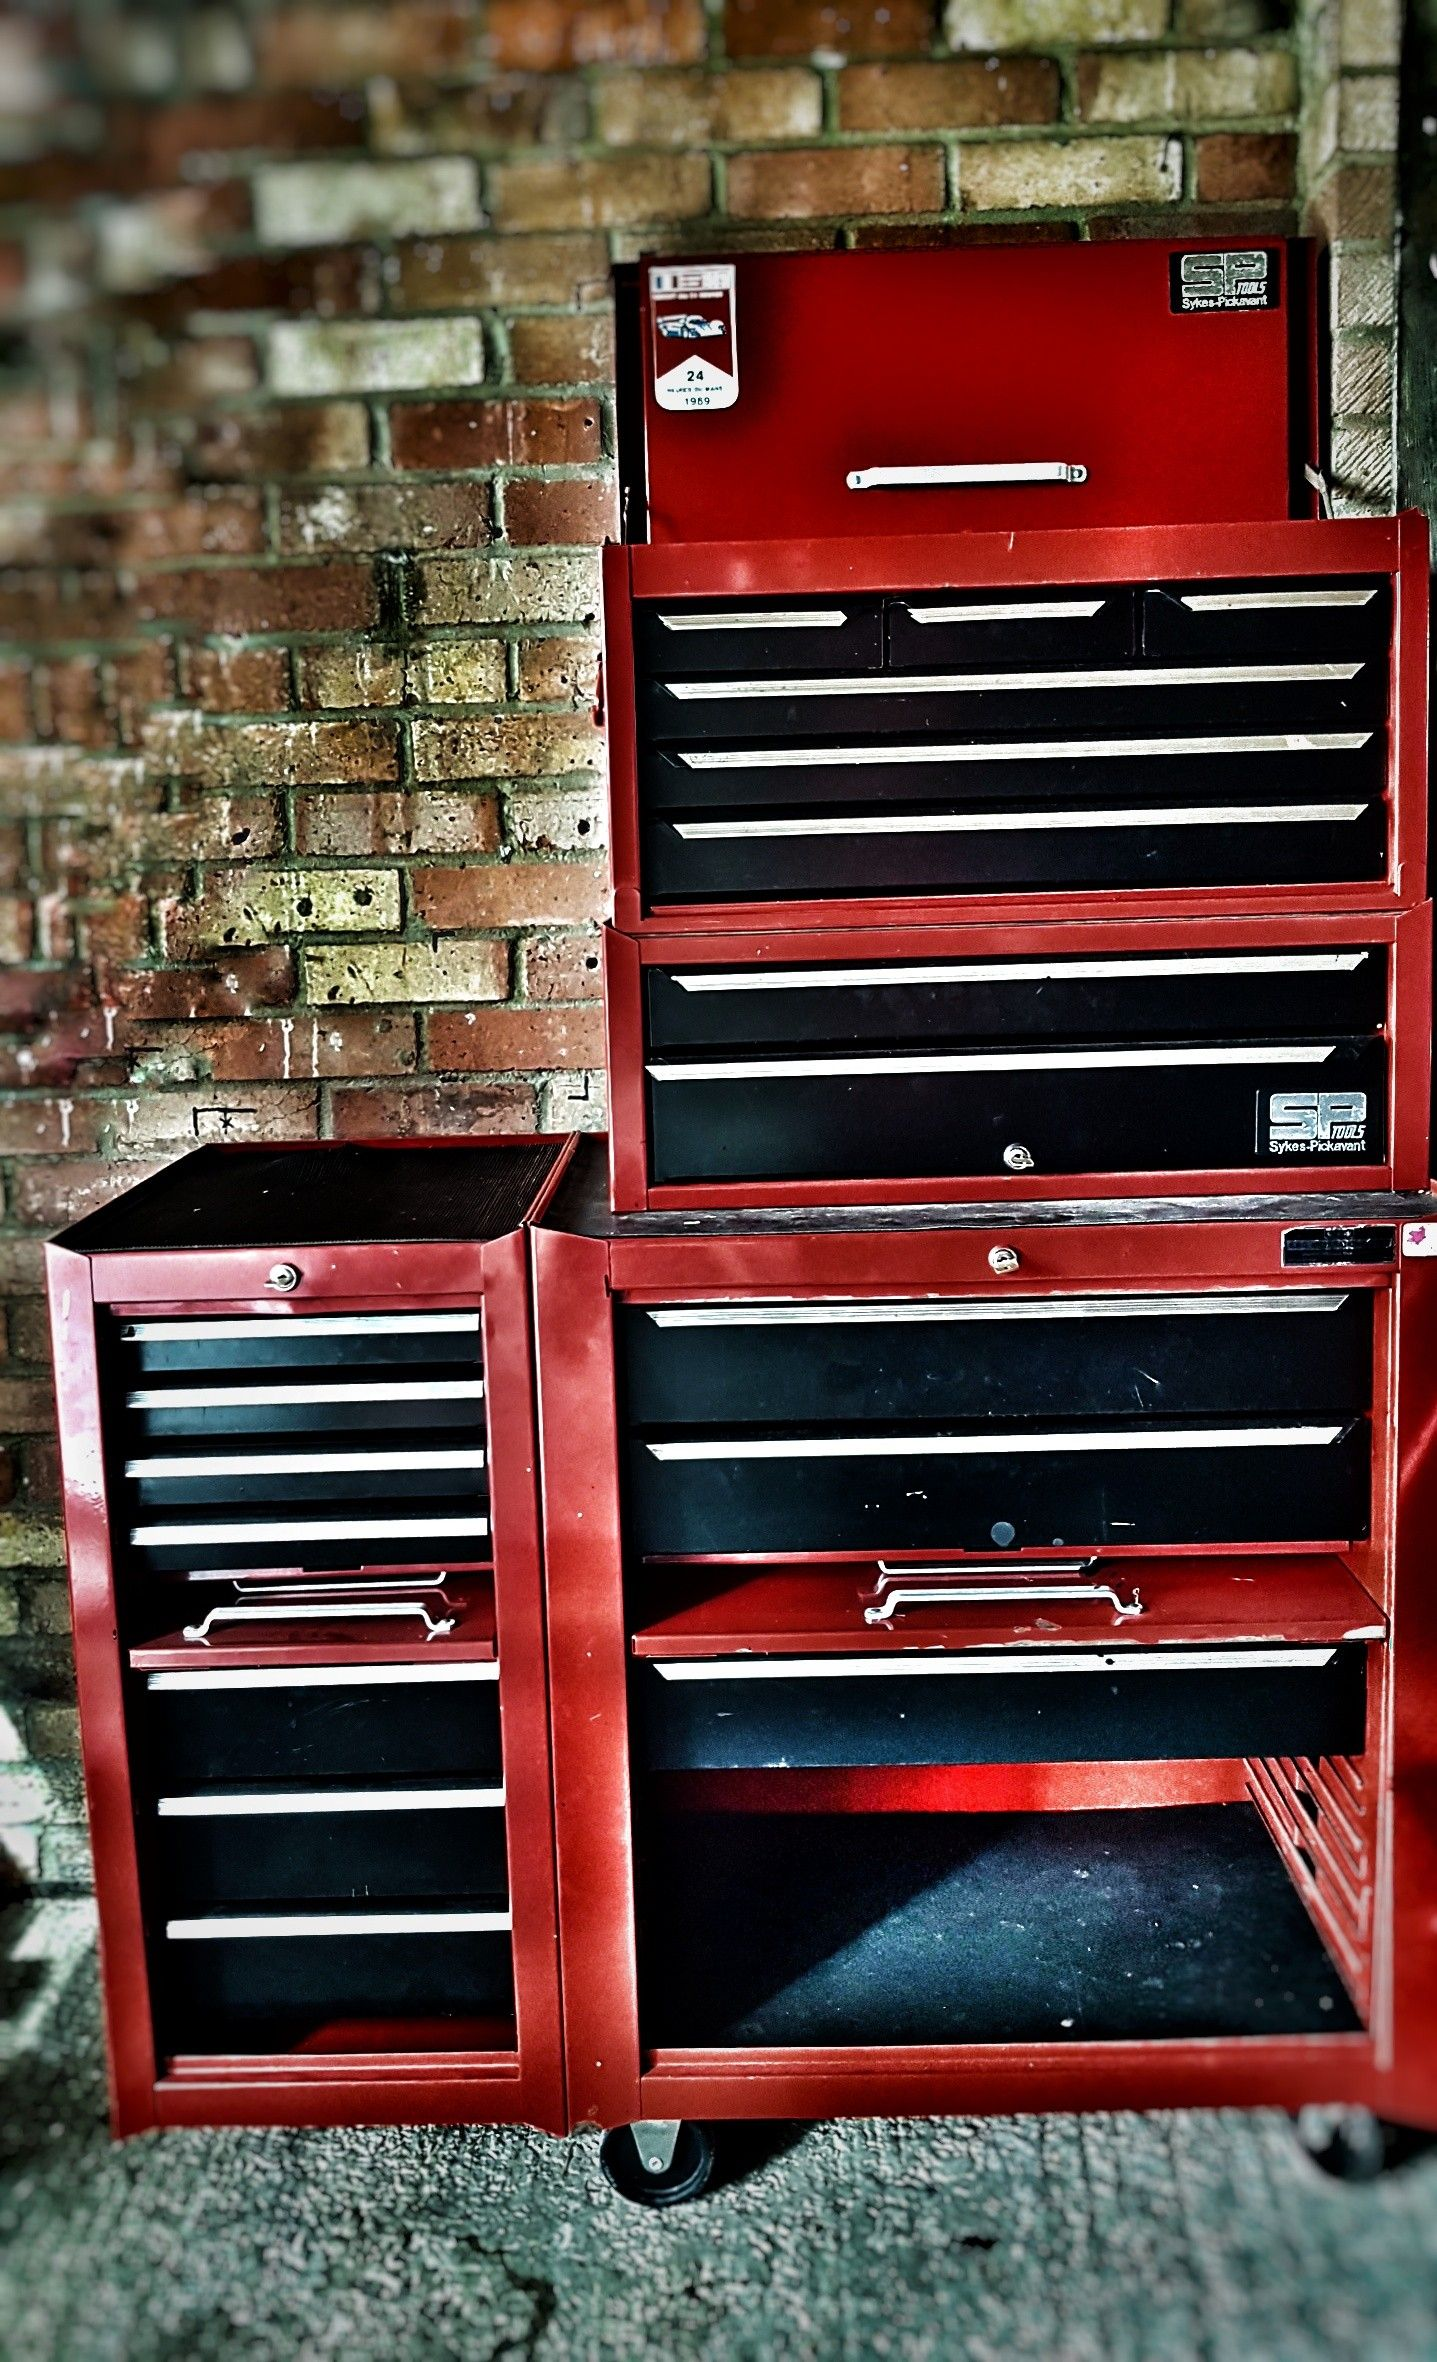 Sykes Pickavant Tool Chest Stack With Side Hanging Drawers Roll Cab Tool Chest Cool Tools Hanging Drawers